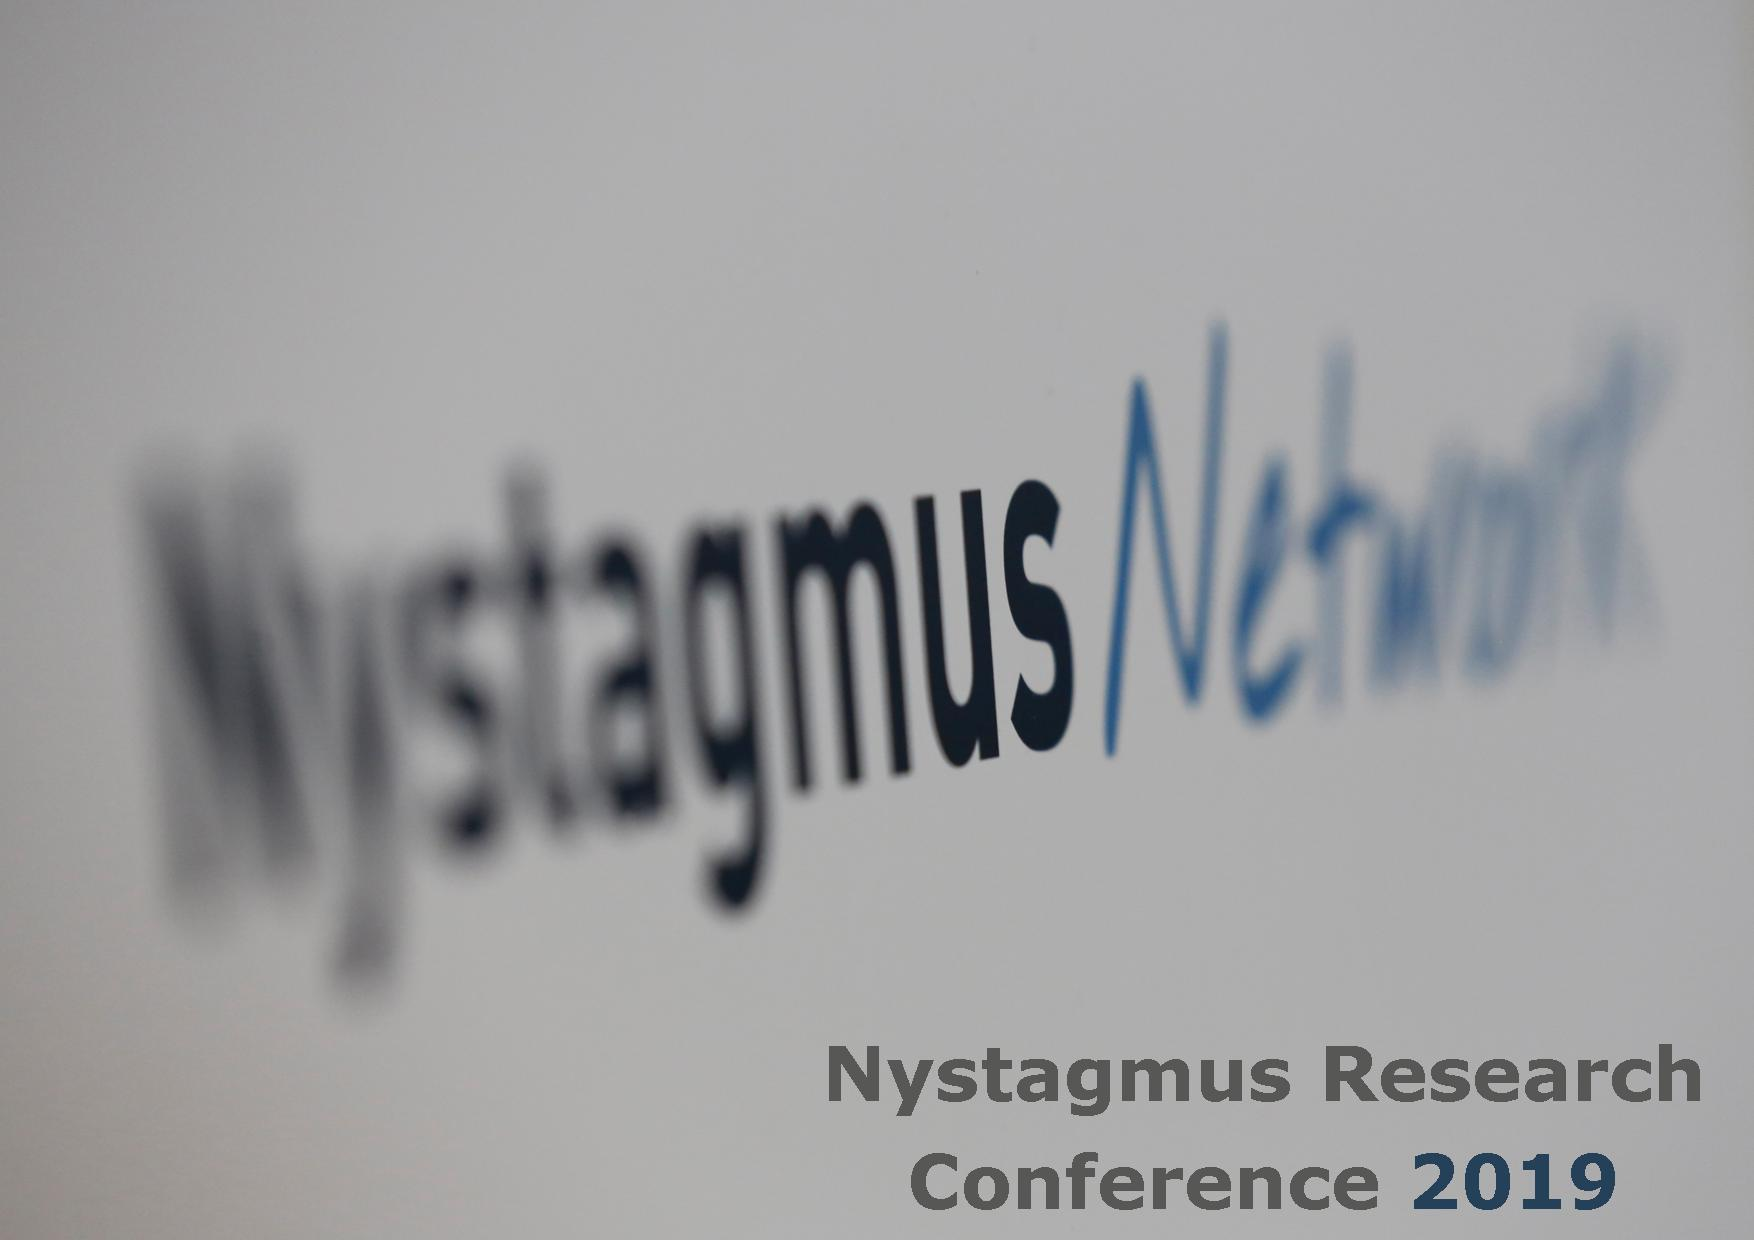 Nystagmus Network research conference 2019.